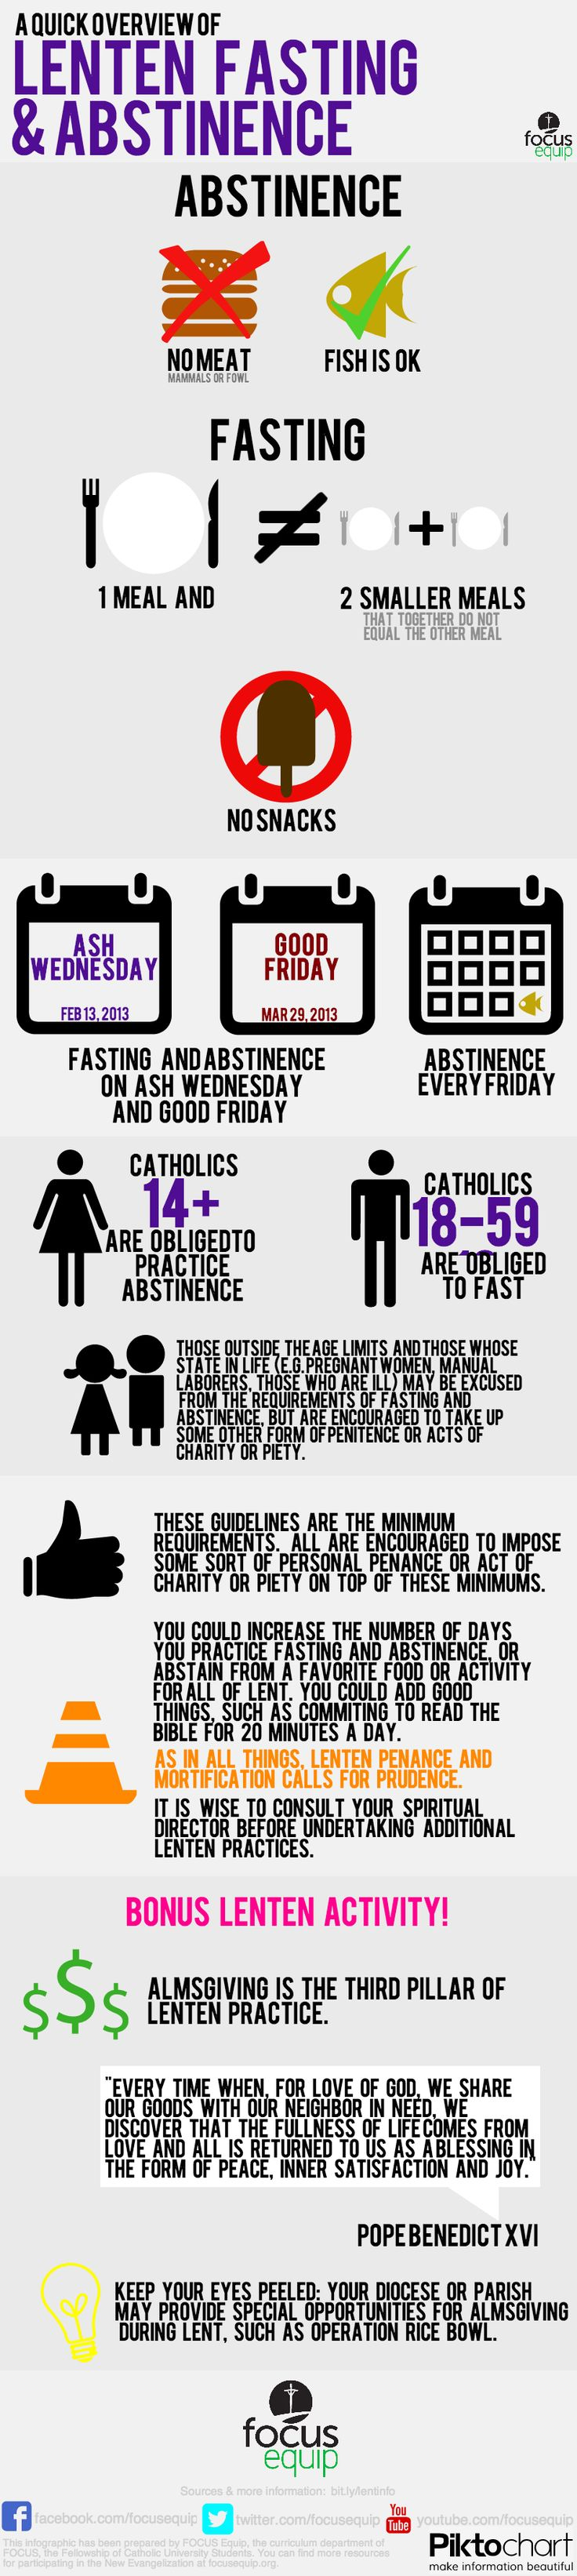 Fellowship of Catholic University Students A Quick Overview of Lenten Fasting & Abstinence